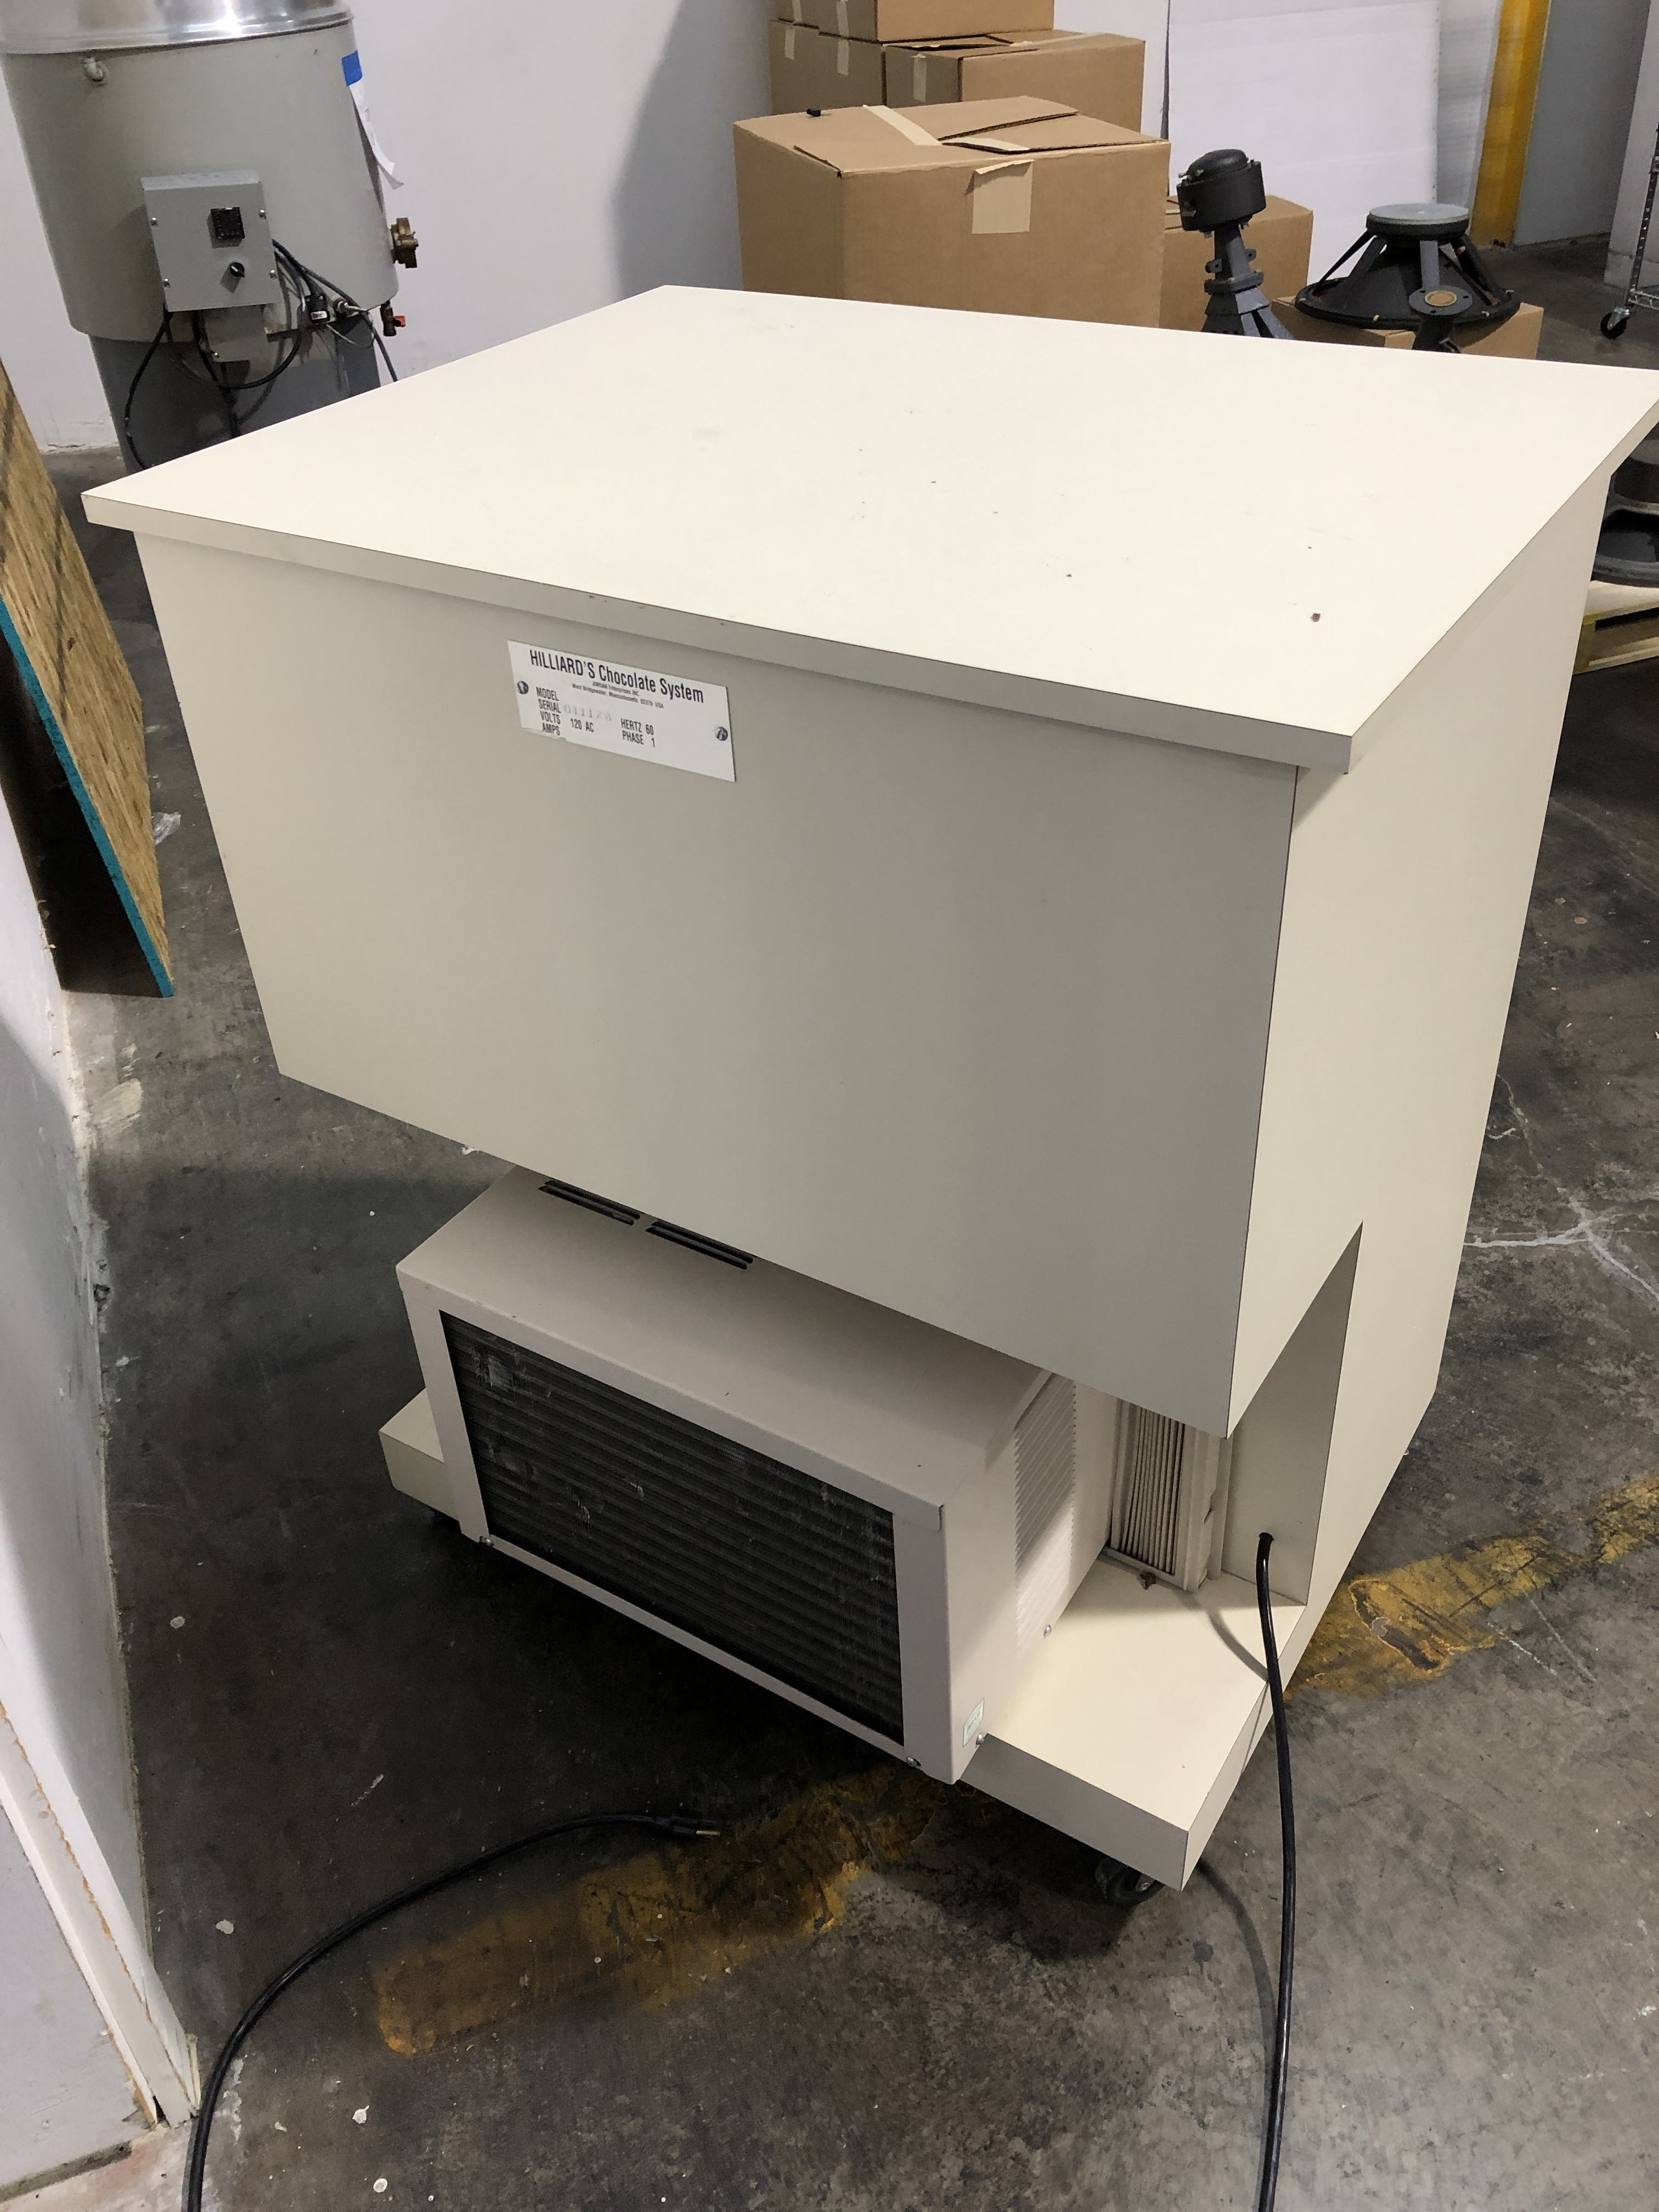 Lot 5 - Hilliard Cooling Cabinet with AC unit. Serial#011128. 110 volts.